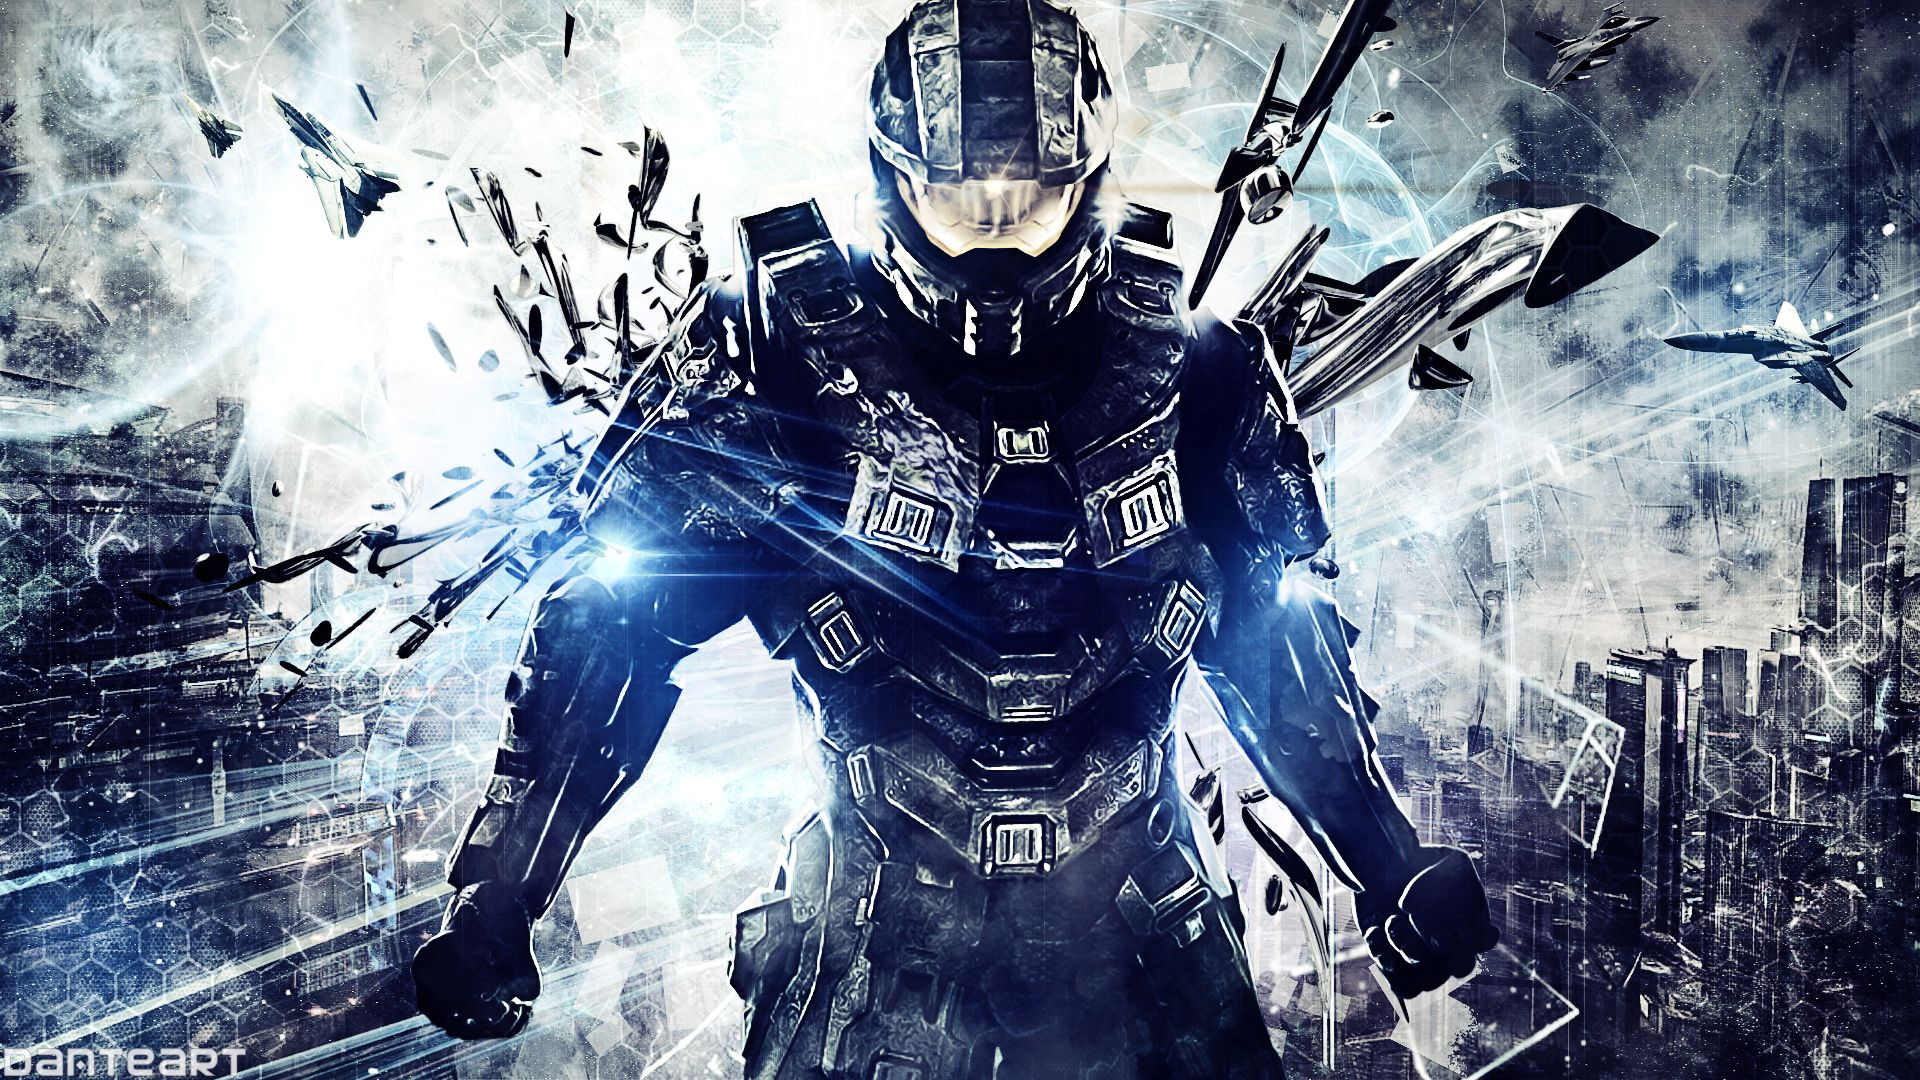 Halo 4 Hd Wallpaper Game 2014 Halo 4 Free Download Halo Master Chief Halo 5 Halo Game